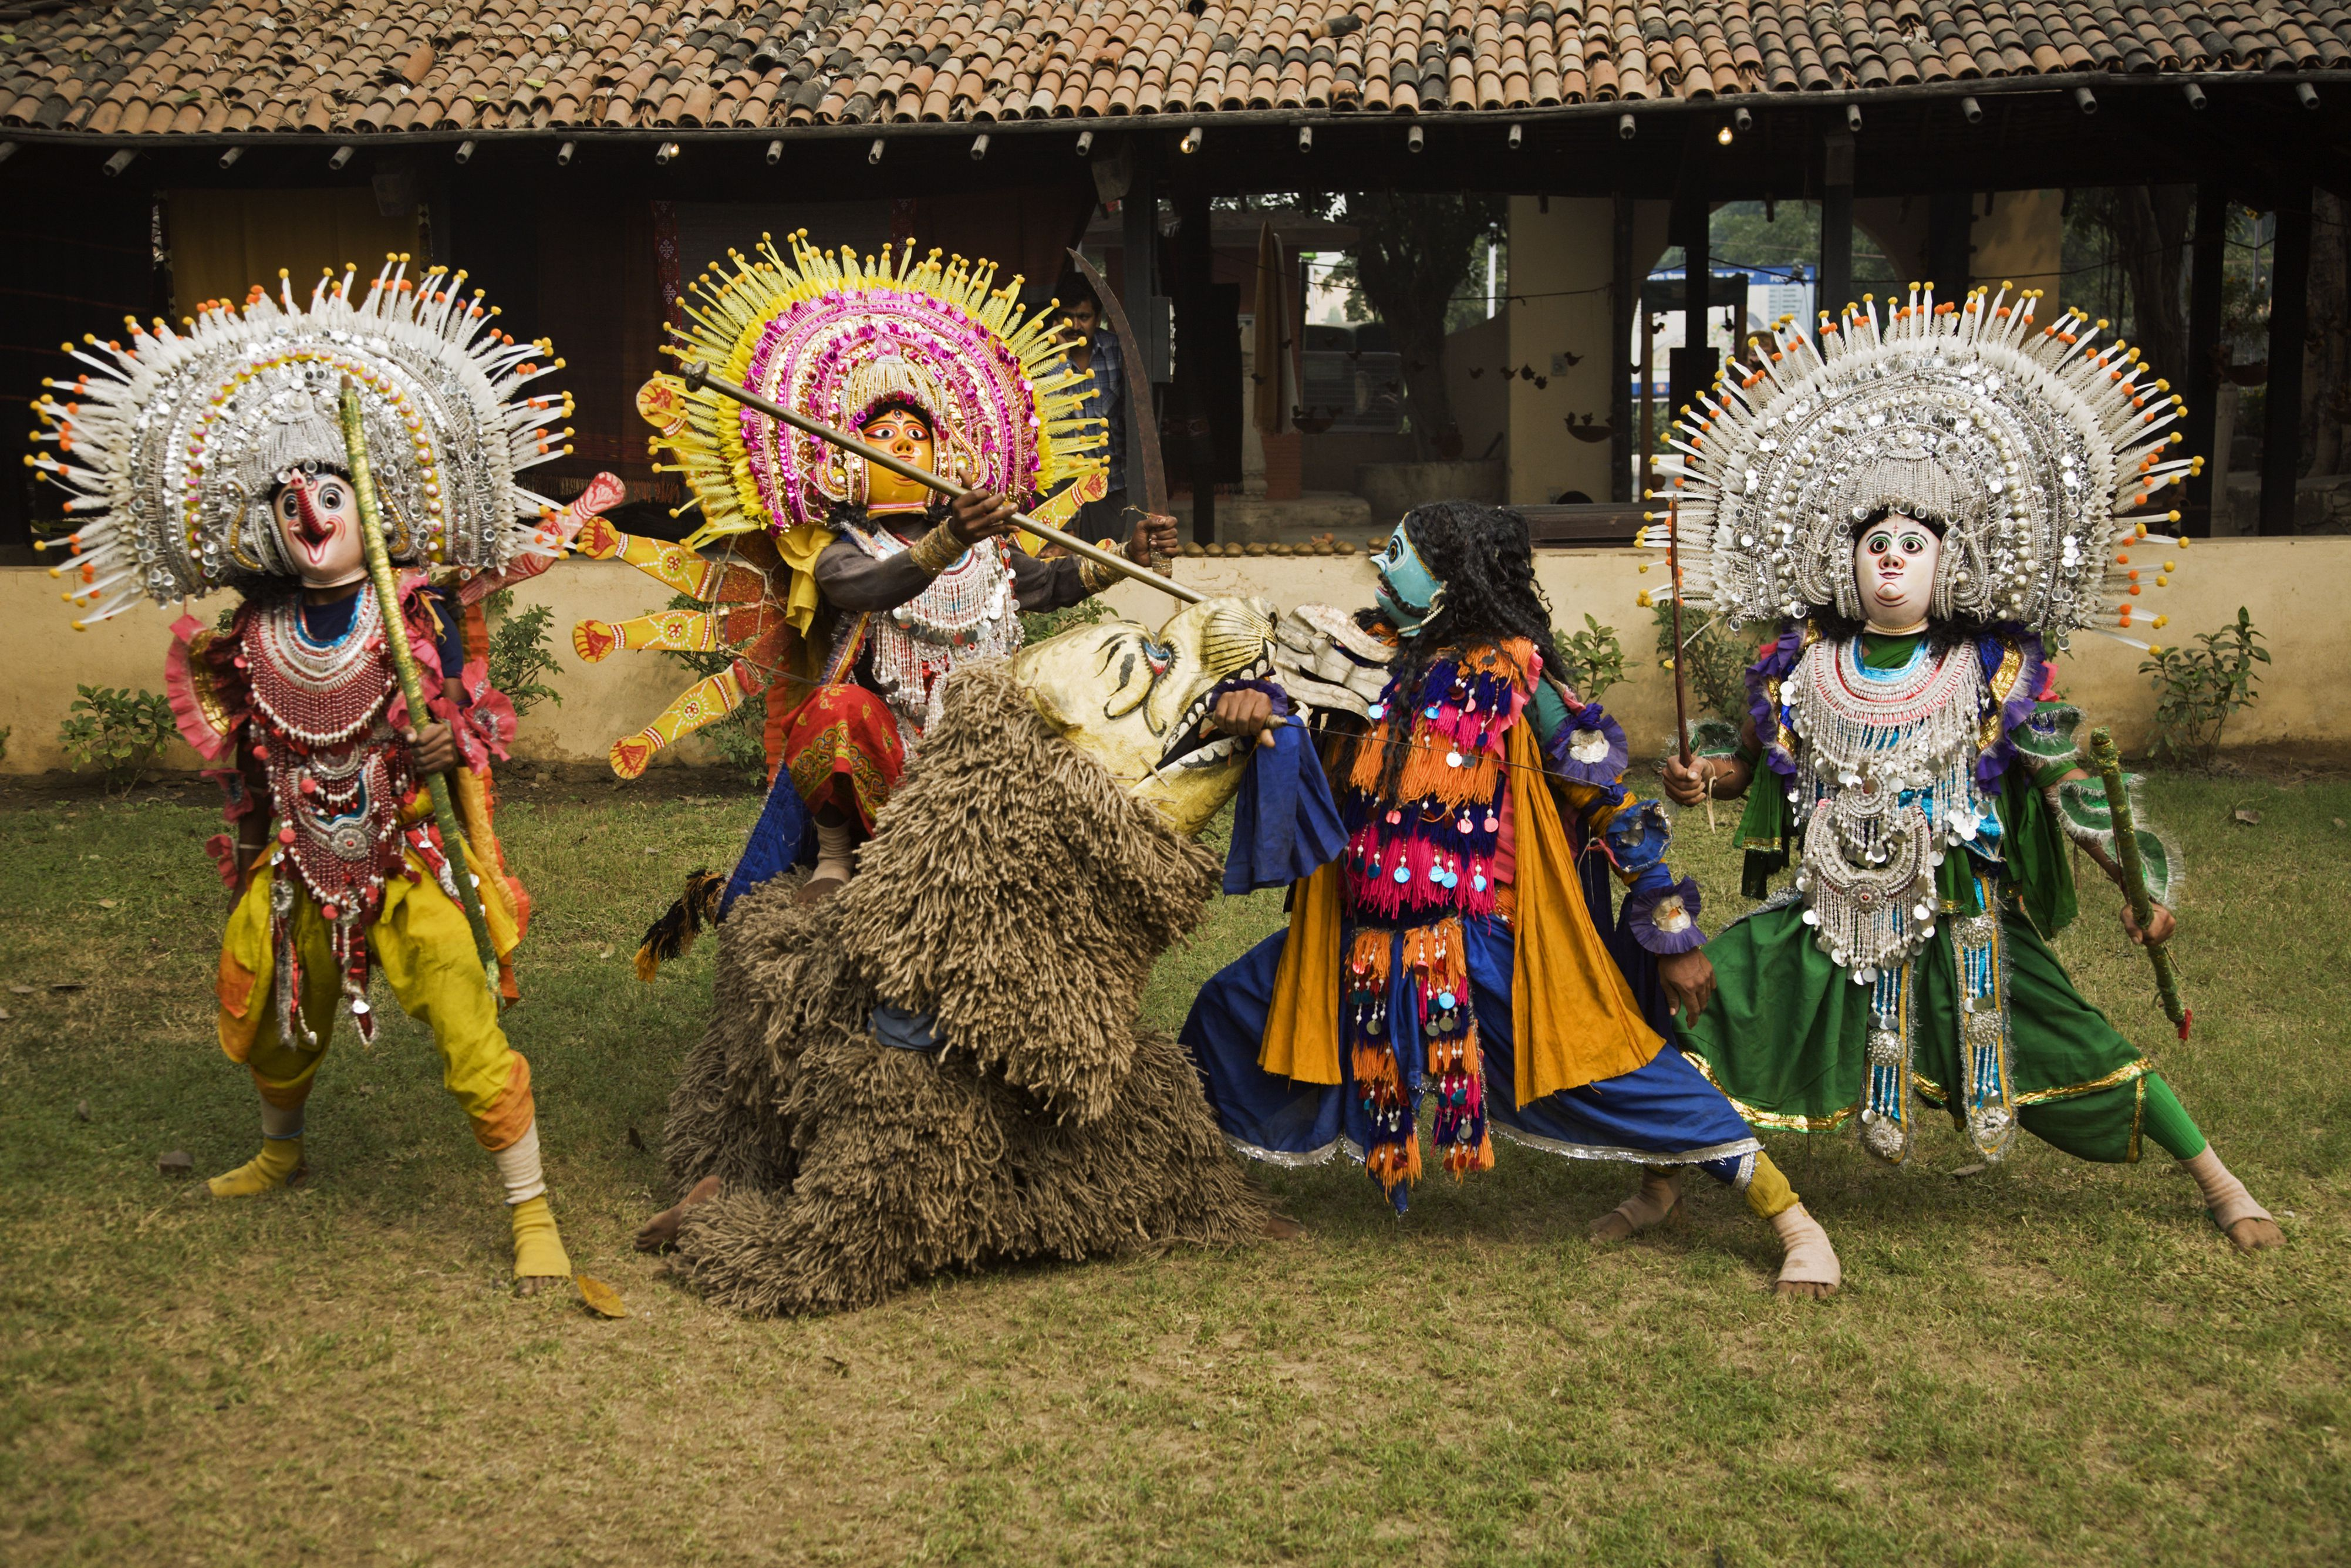 Costumed Chhau dancers (from Purulia in West Bengal) performing a traditional dance, Crafts Museum.